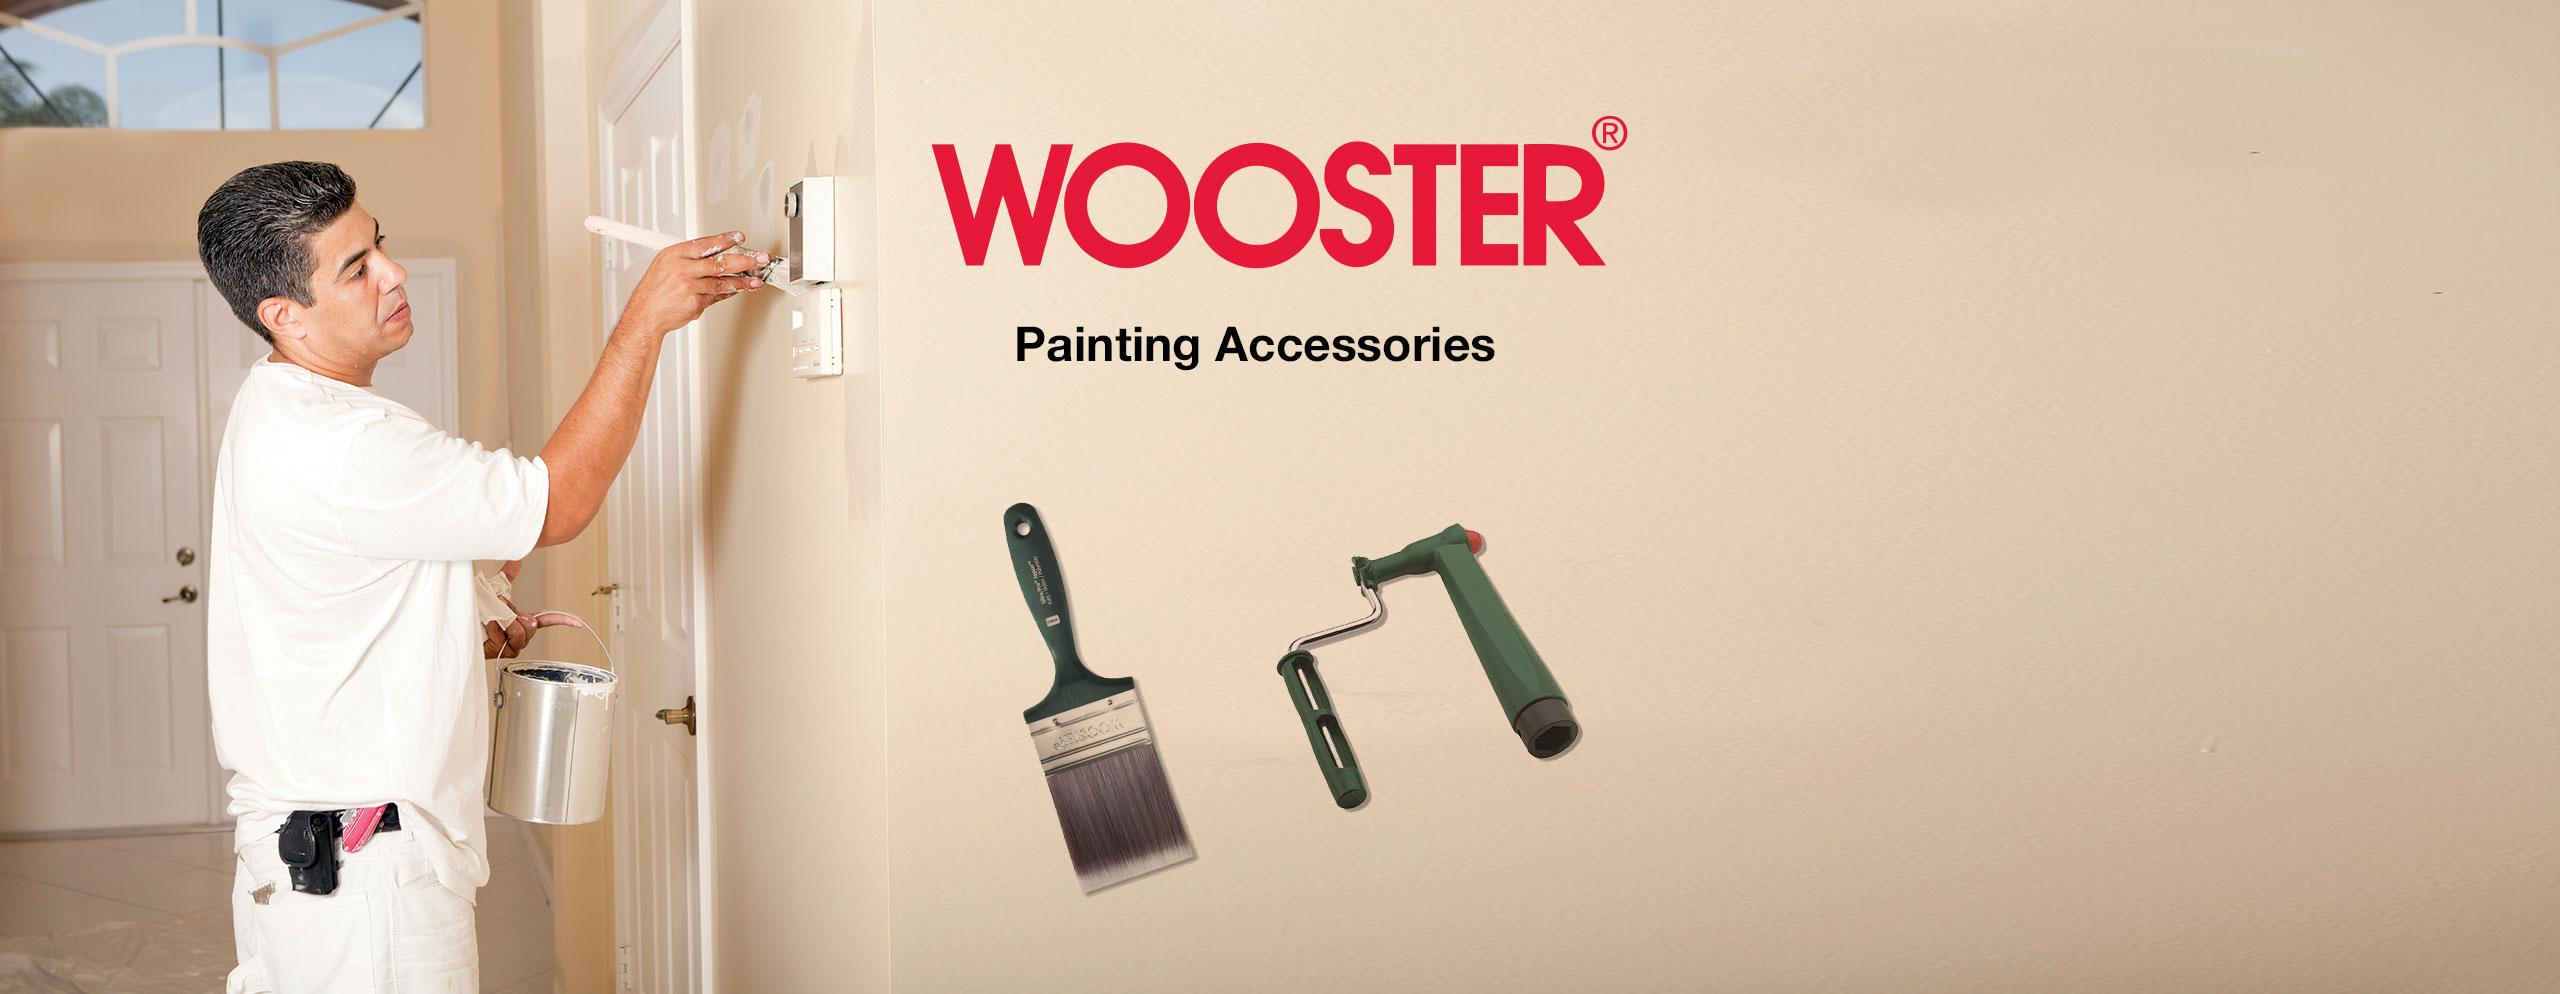 wooster painting accessories